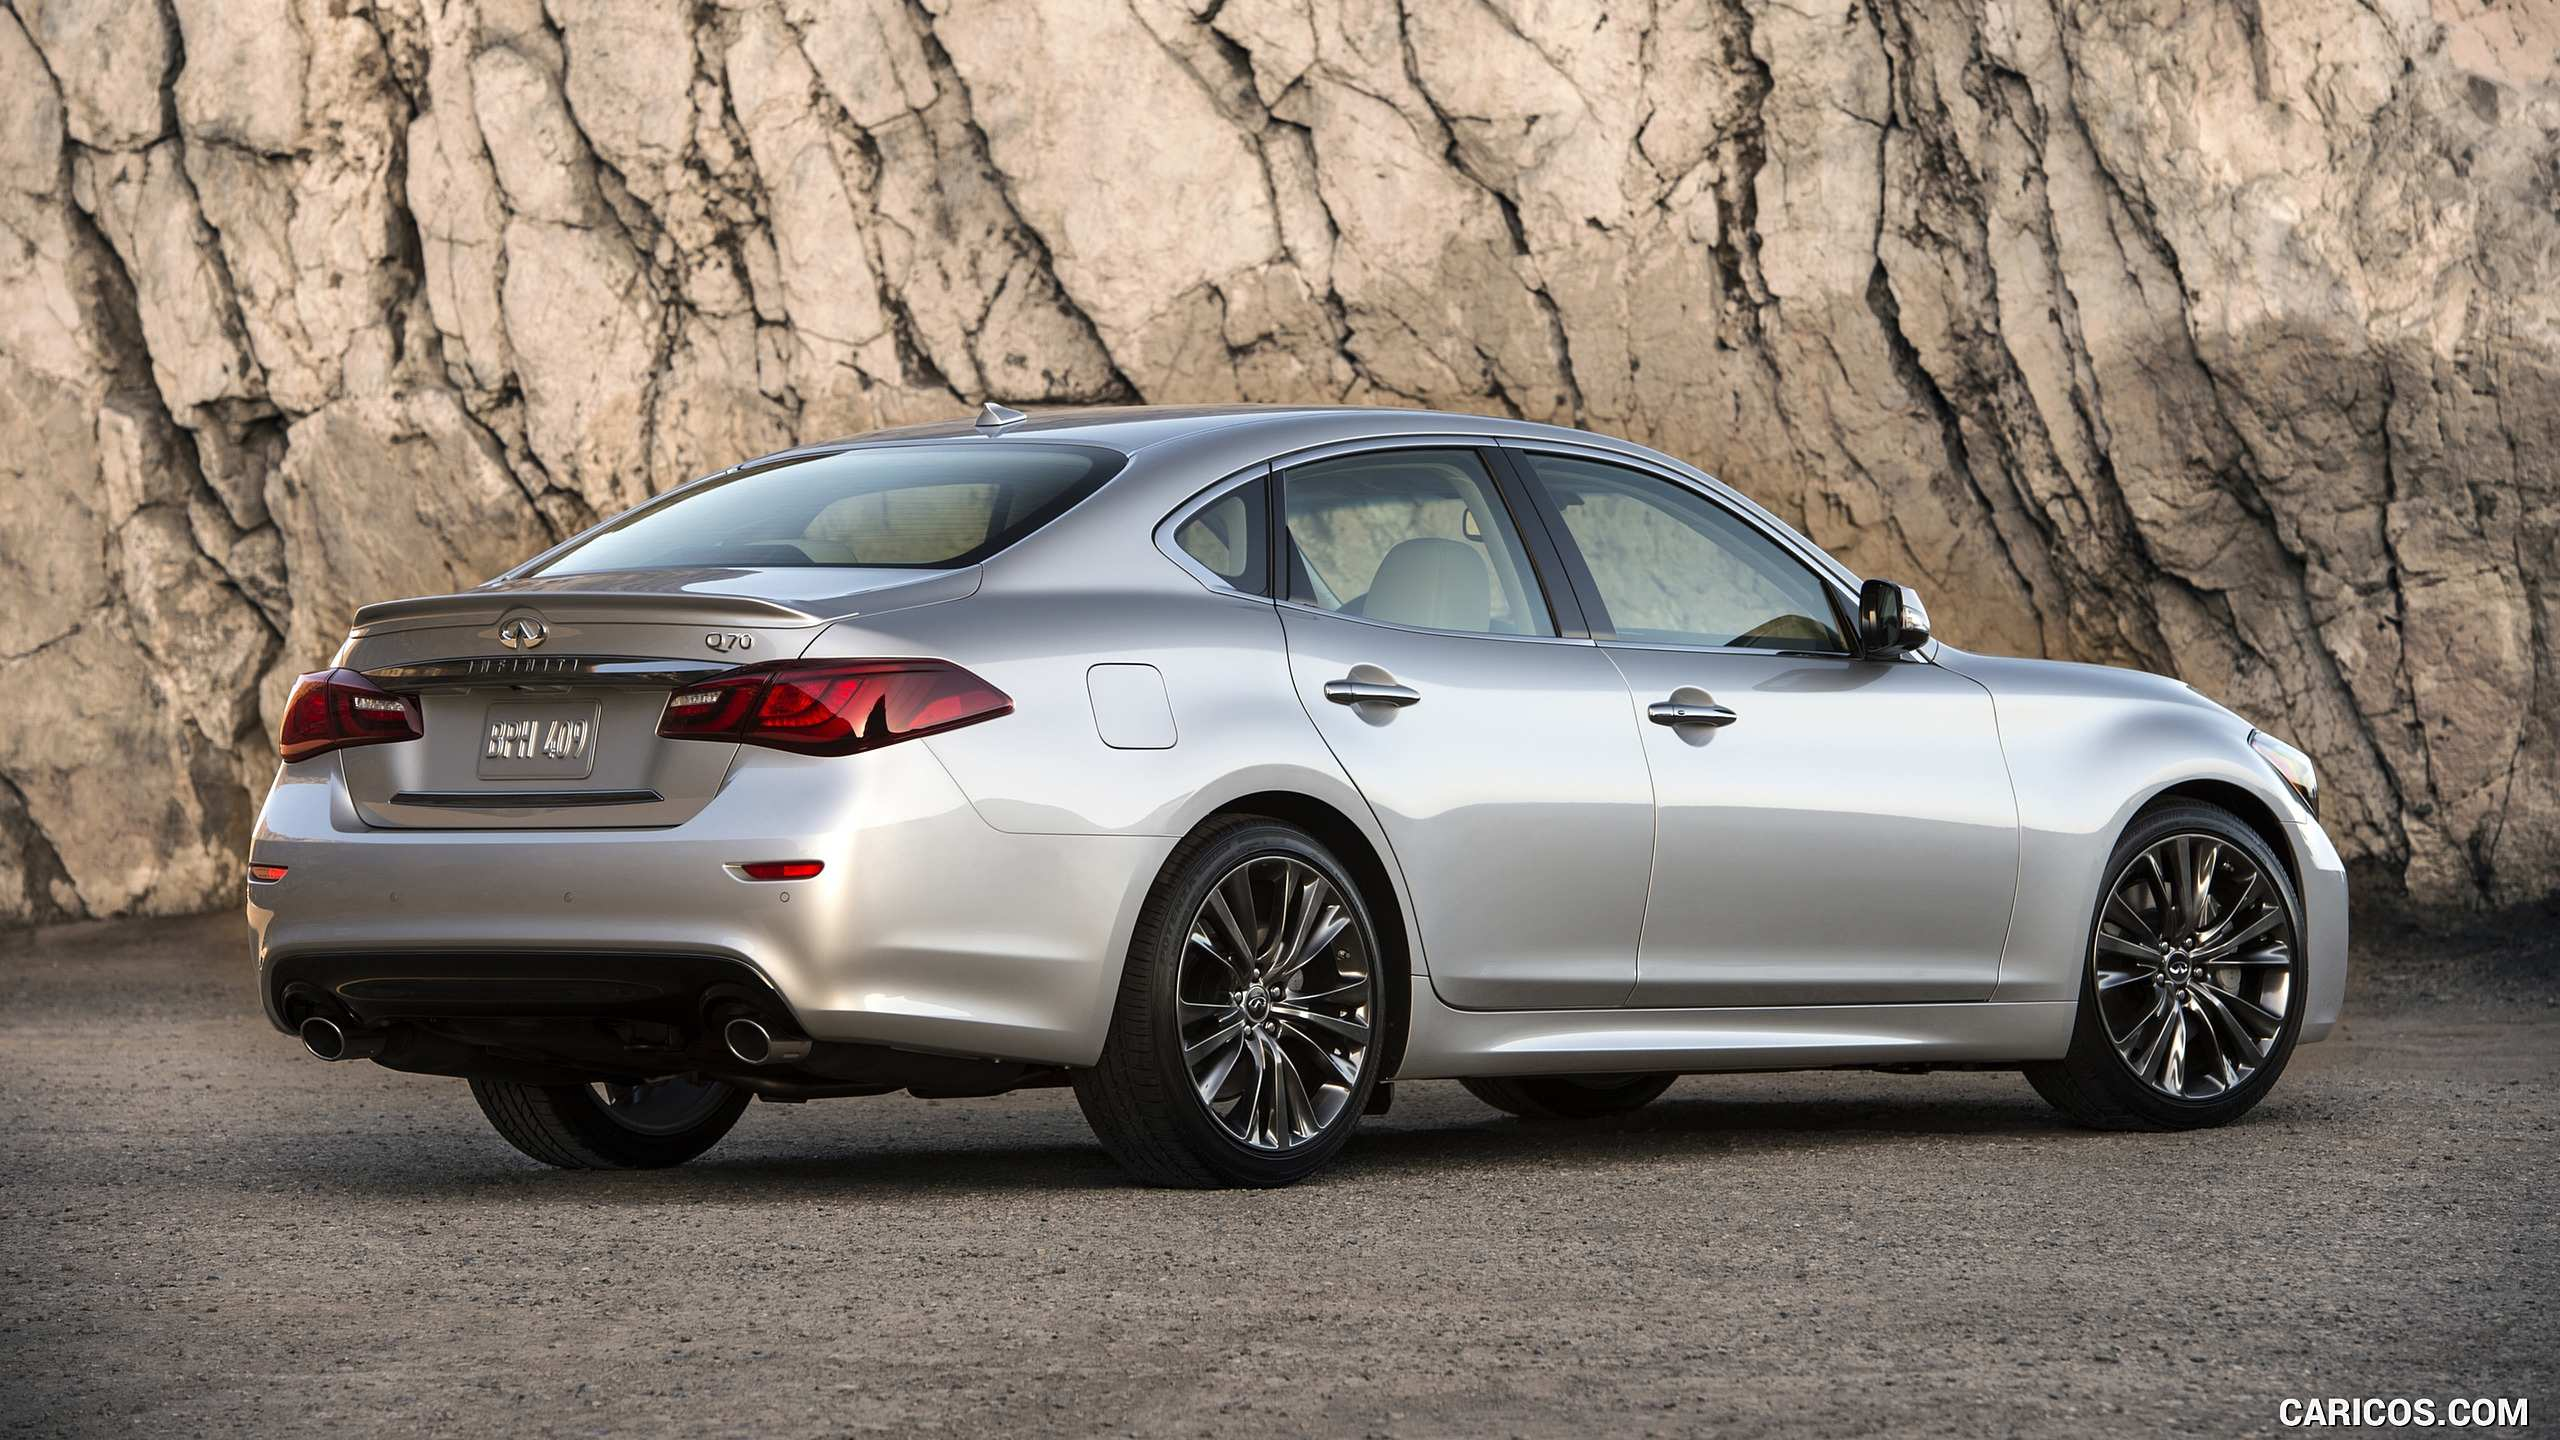 78 Gallery of 2019 Infiniti Q70 Redesign Spesification for 2019 Infiniti Q70 Redesign